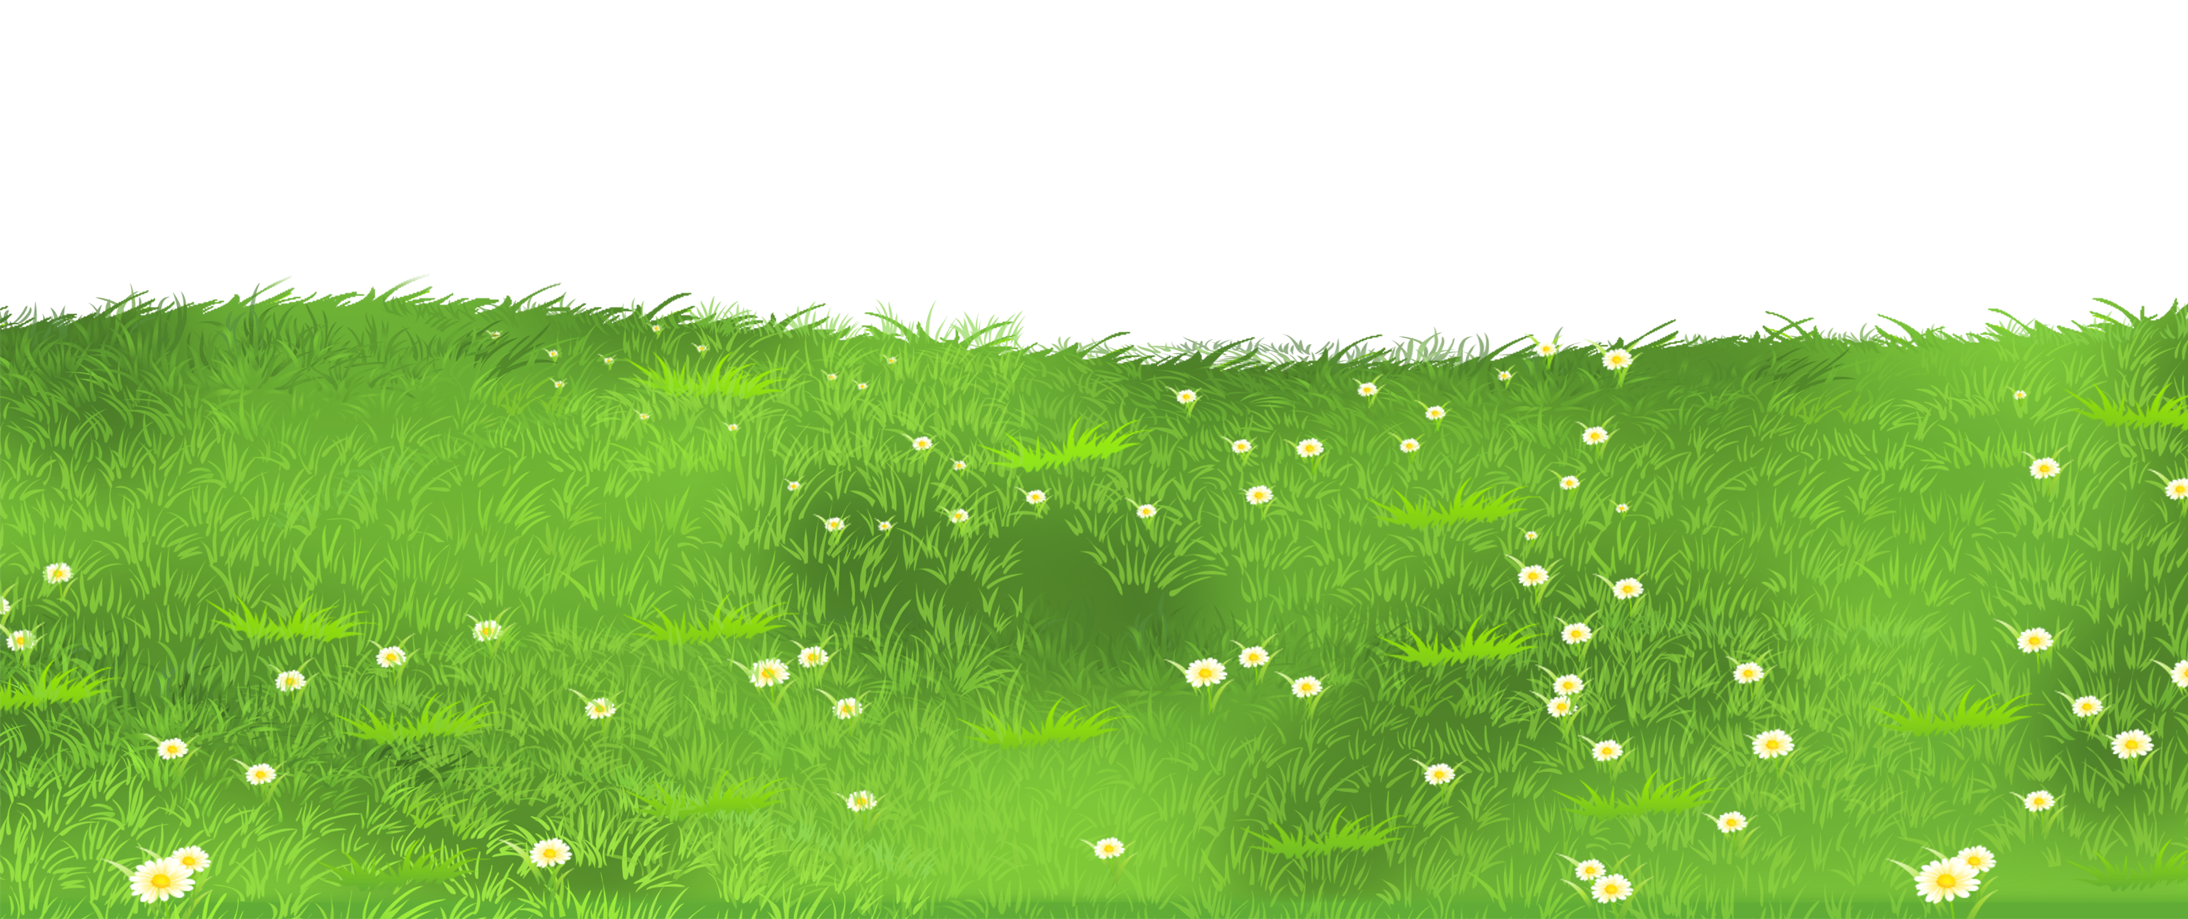 image download Valley clipart grassland. Green grass image diversos.